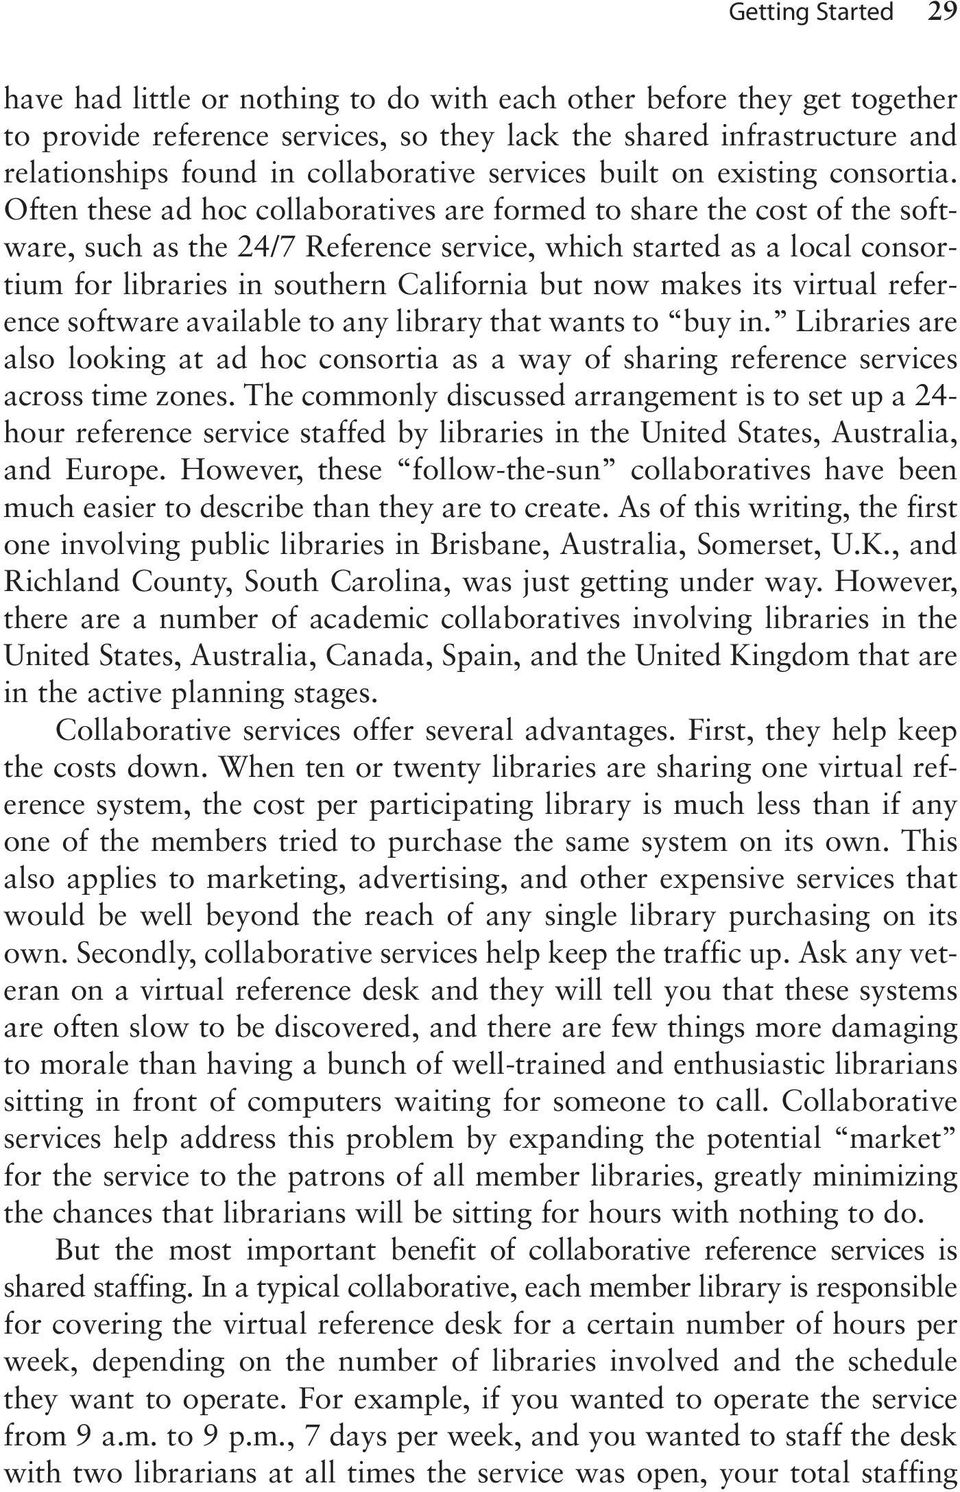 Often these ad hoc collaboratives are formed to share the cost of the software, such as the 24/7 Reference service, which started as a local consortium for libraries in southern California but now